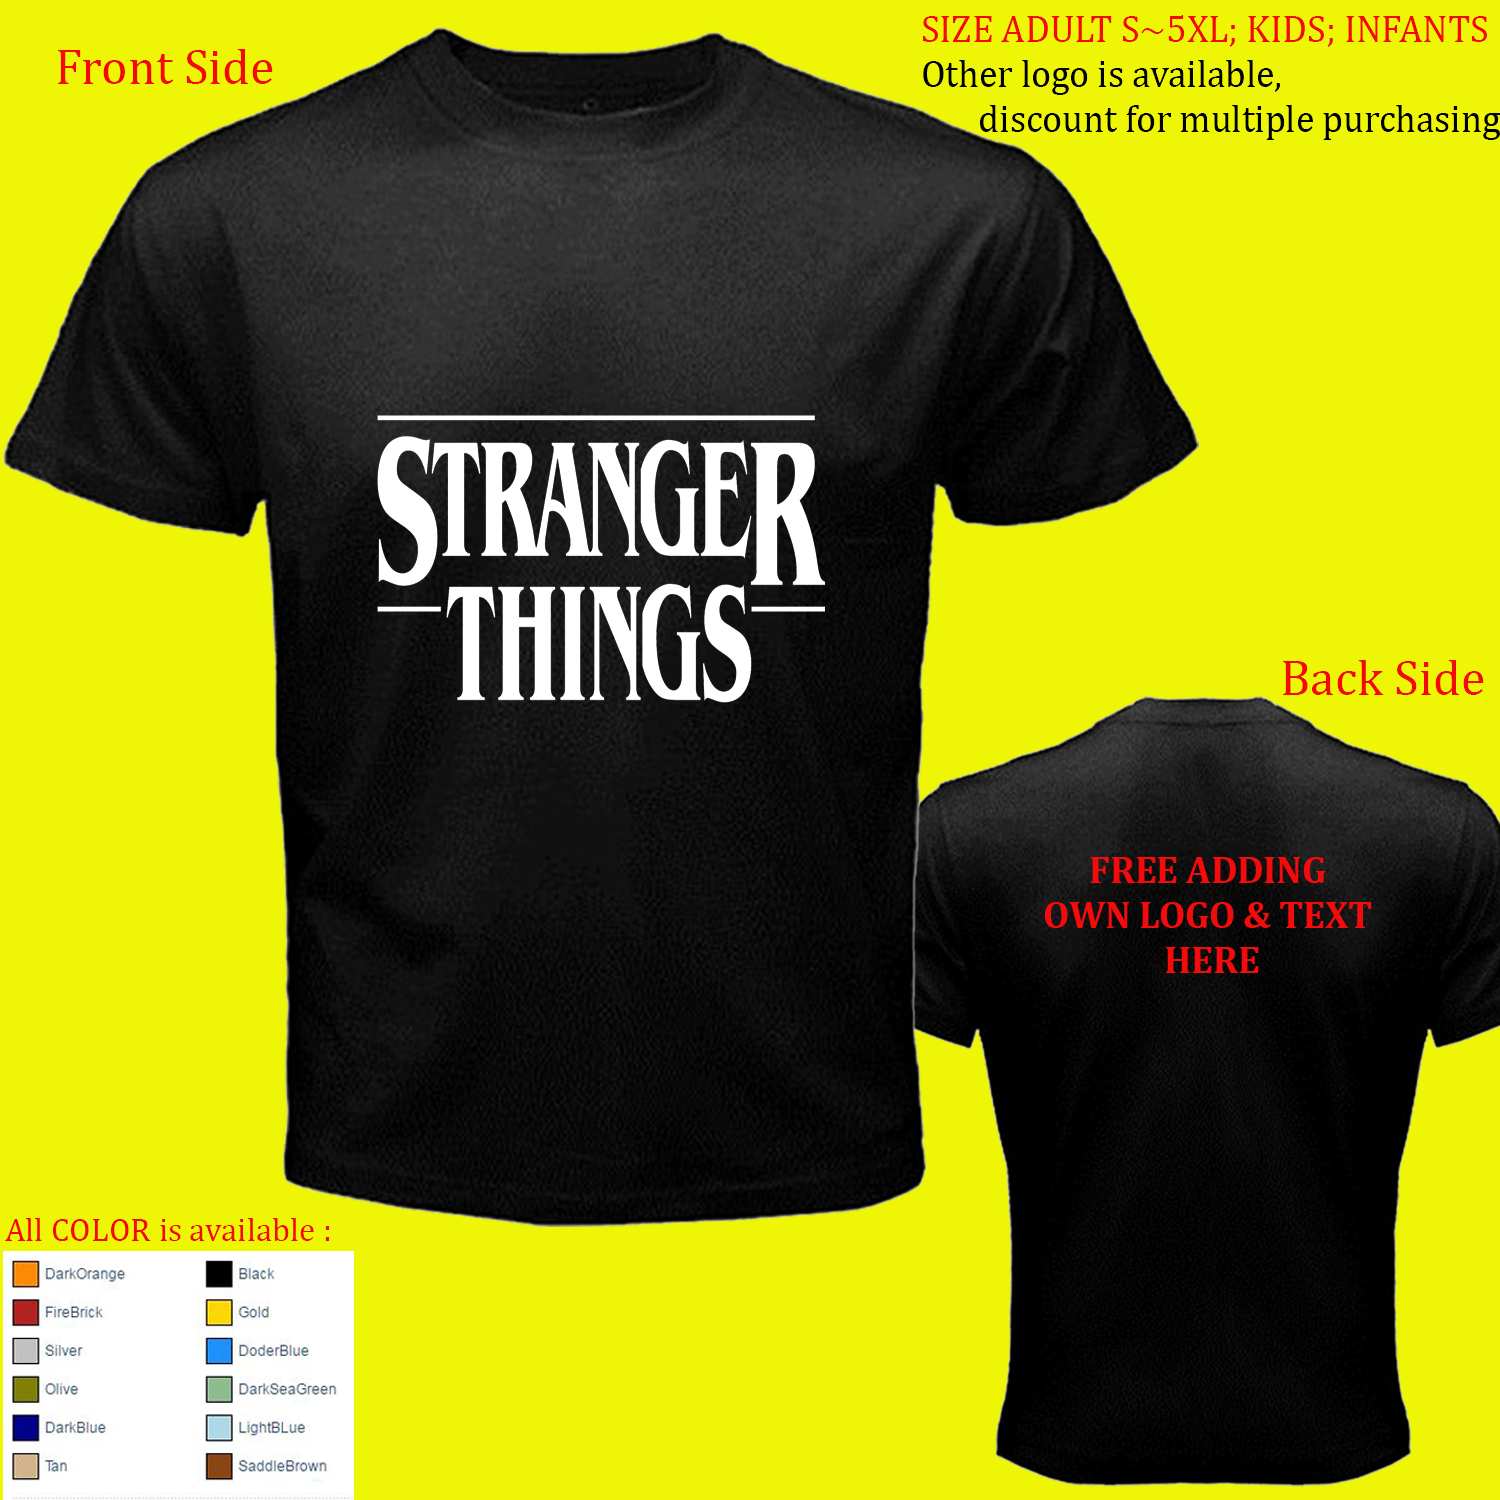 stranger things t shirt s m l xl 2xl 3xl 4xl and 50. Black Bedroom Furniture Sets. Home Design Ideas